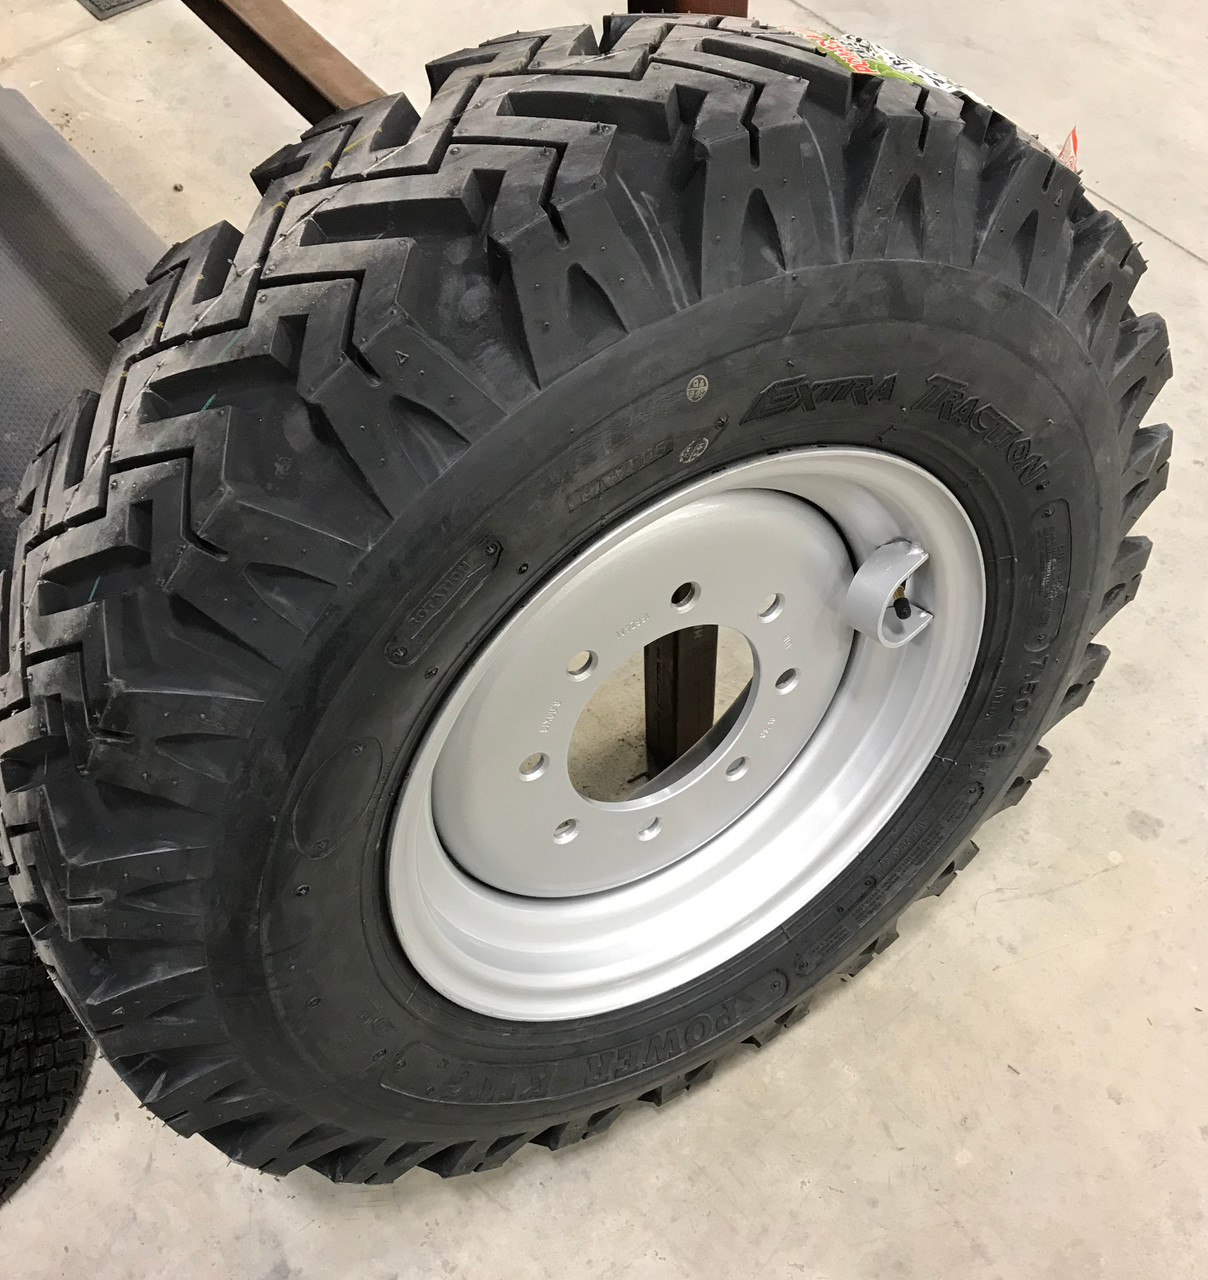 New 7.50 16 Snow Tire & Wheel Kits for Skid Loader replaces 10-16.5 12-16.5